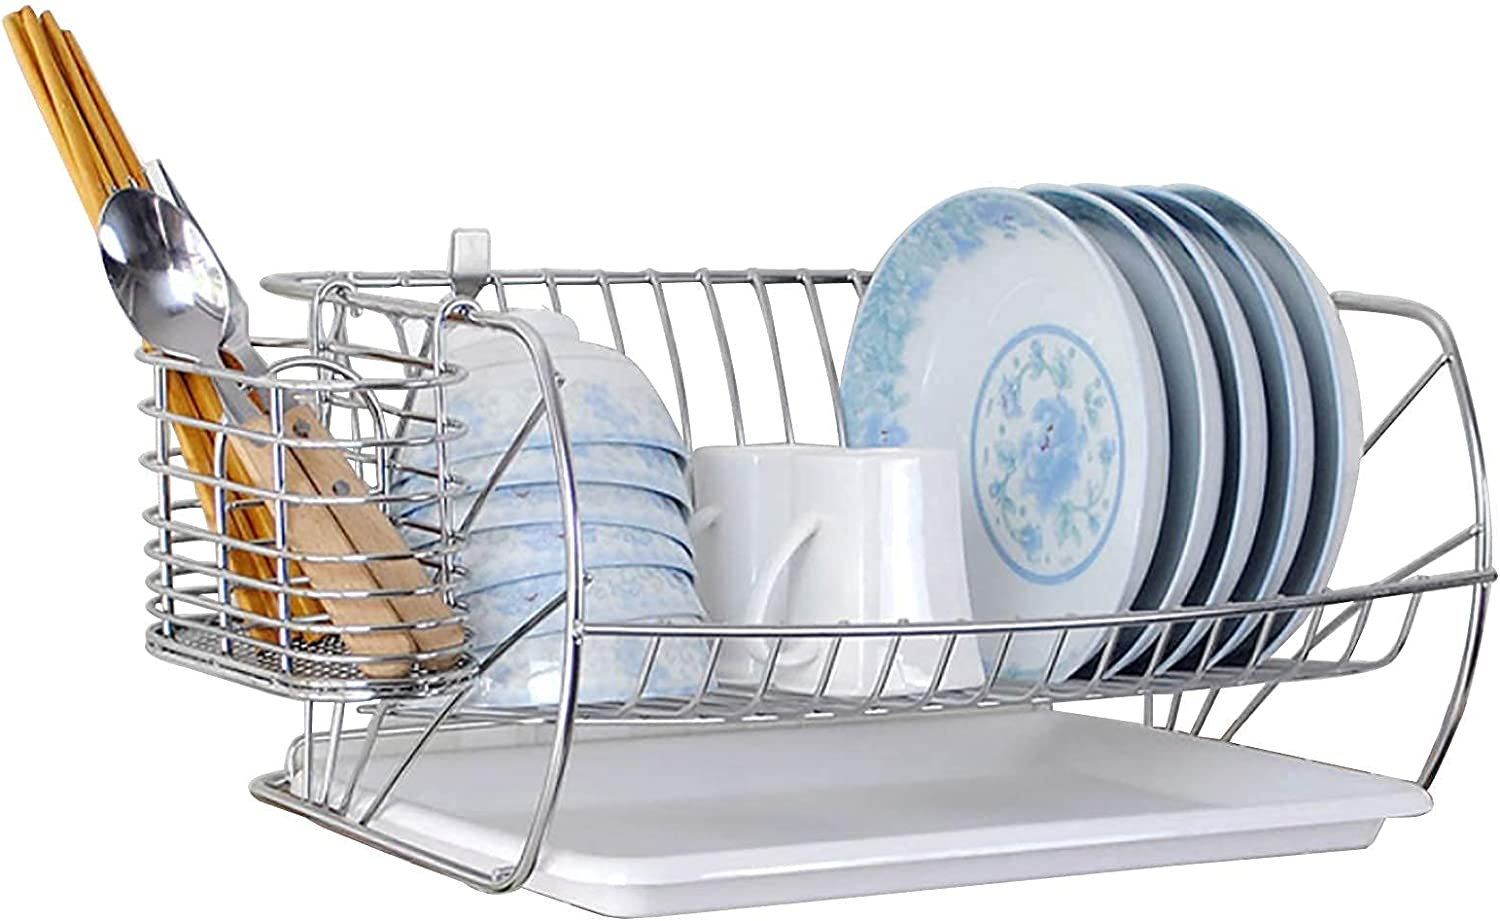 Hanging Dish Drying Rack Over New product! New type Sale SALE% OFF The Drainer with Drain Sink